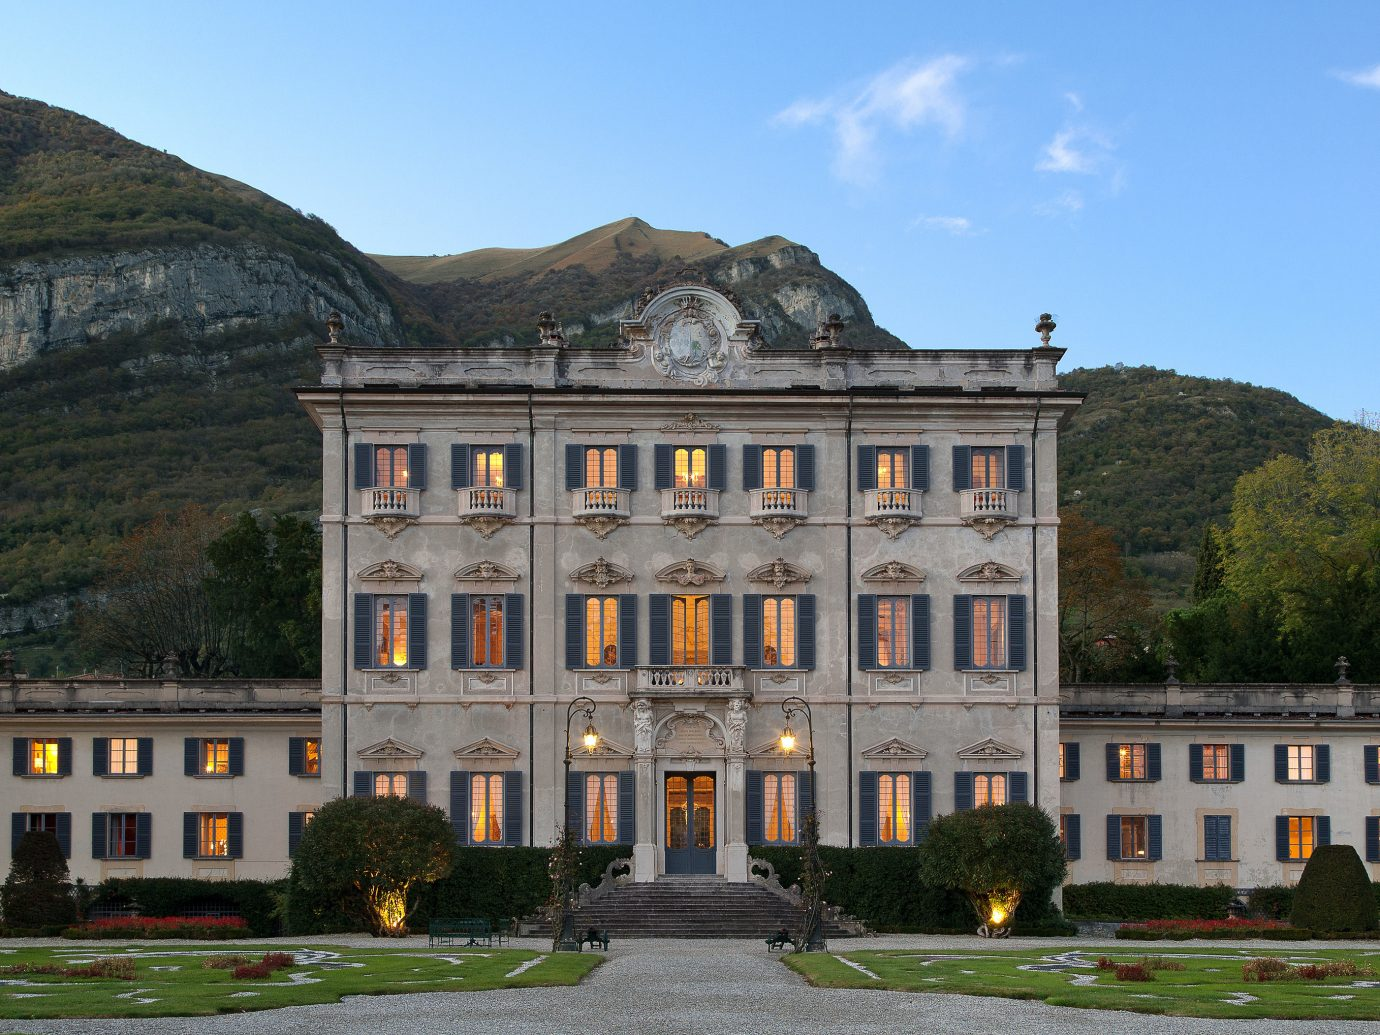 Hotels Luxury Travel sky outdoor mountain landmark building estate stately home château palace mansion national trust for places of historic interest or natural beauty facade Villa old house historic site window real estate tree manor house ancient history elevation Town stone